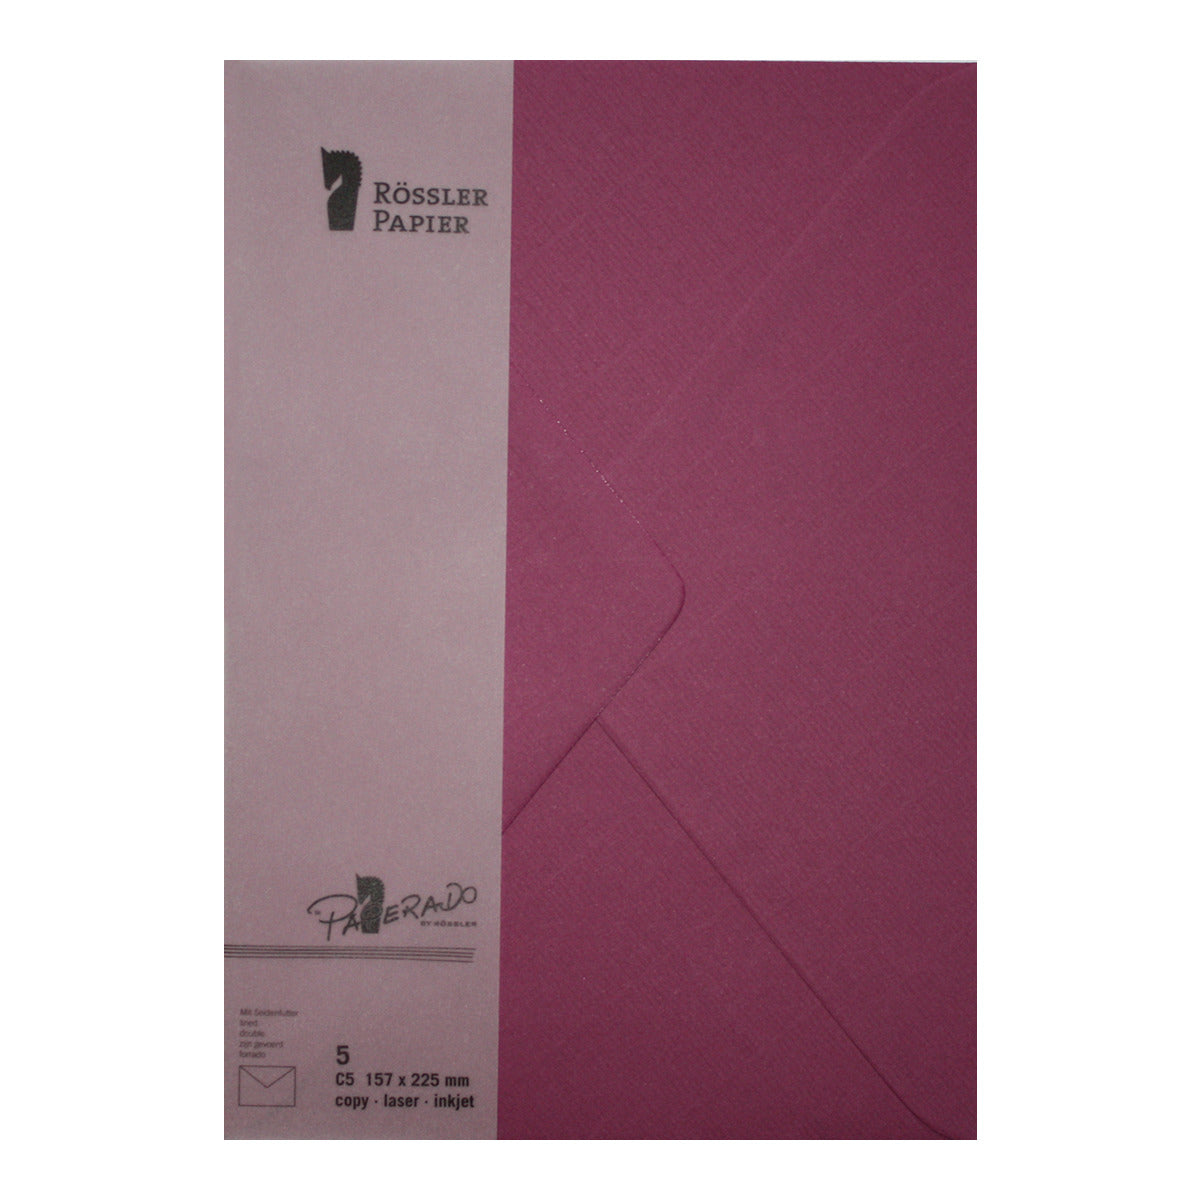 Envelope with Purple Lined Interior - ROSSLER